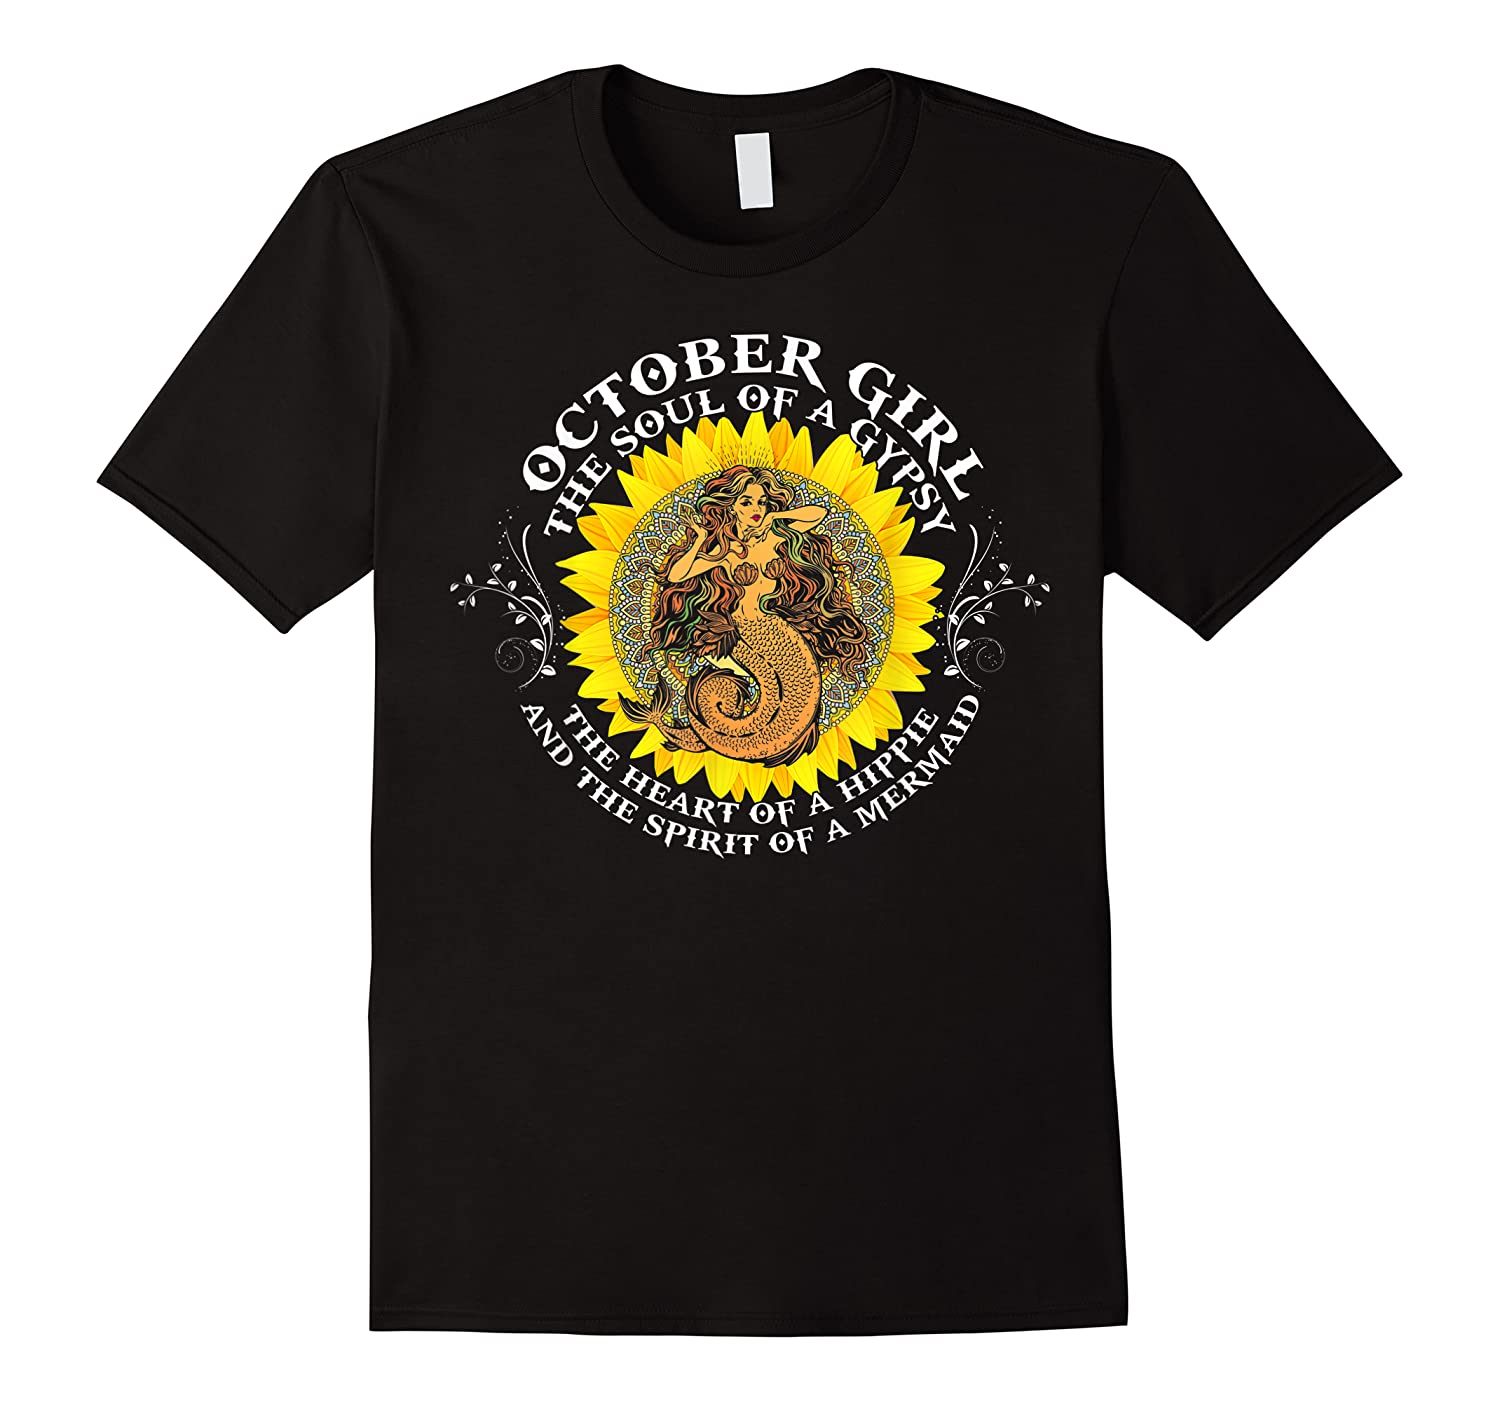 October Girl The Soul Of A Mermaid Tshirt Birthday Gifts